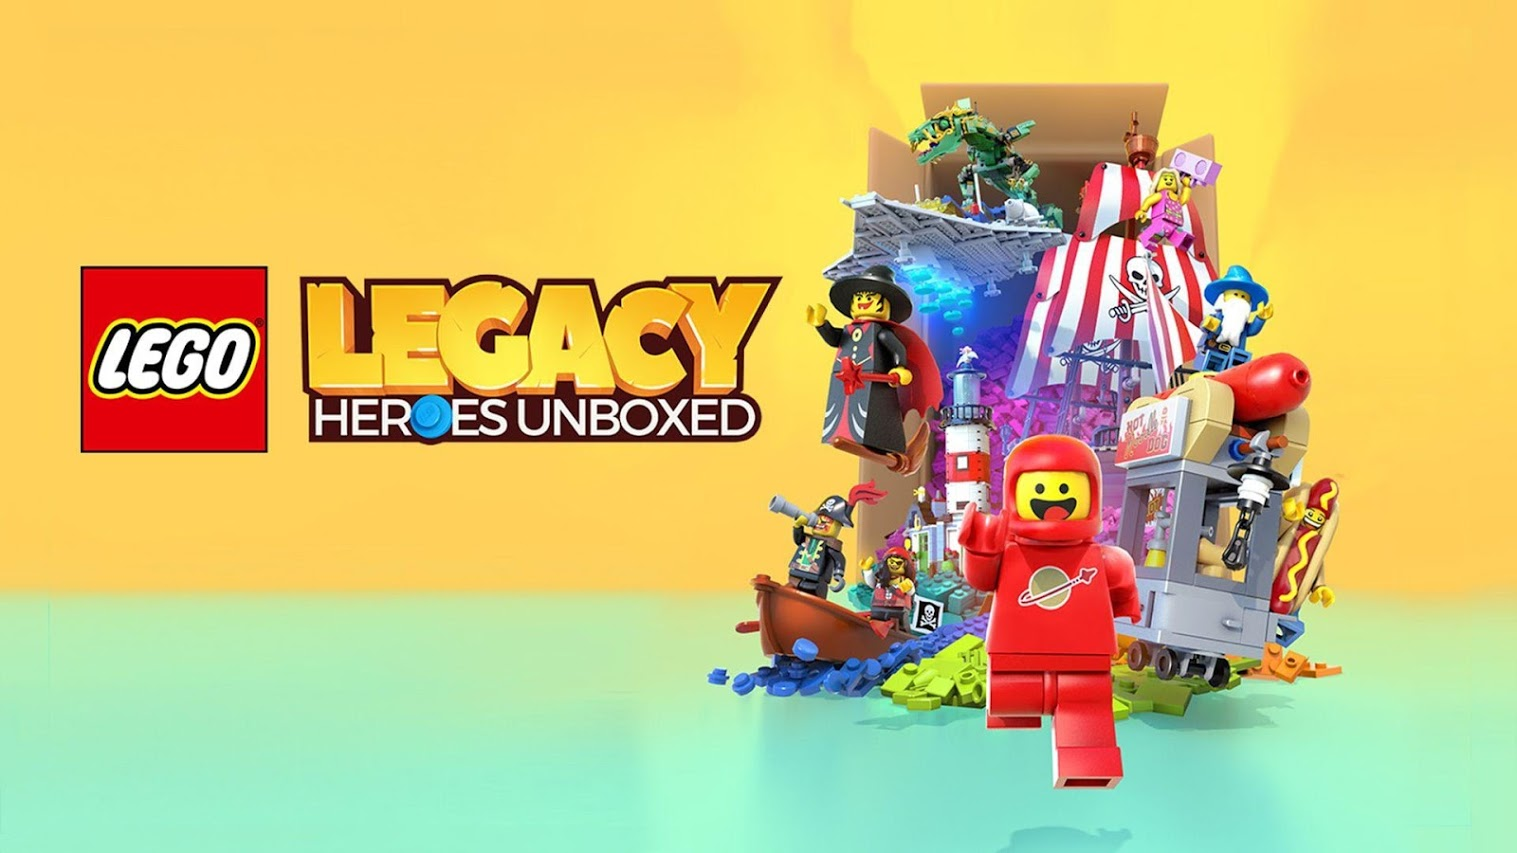 LEGO Legacy: Heroes Unboxed is a F2P collect-a-thon RPG, now available on the Play Store (Update) - Android Police